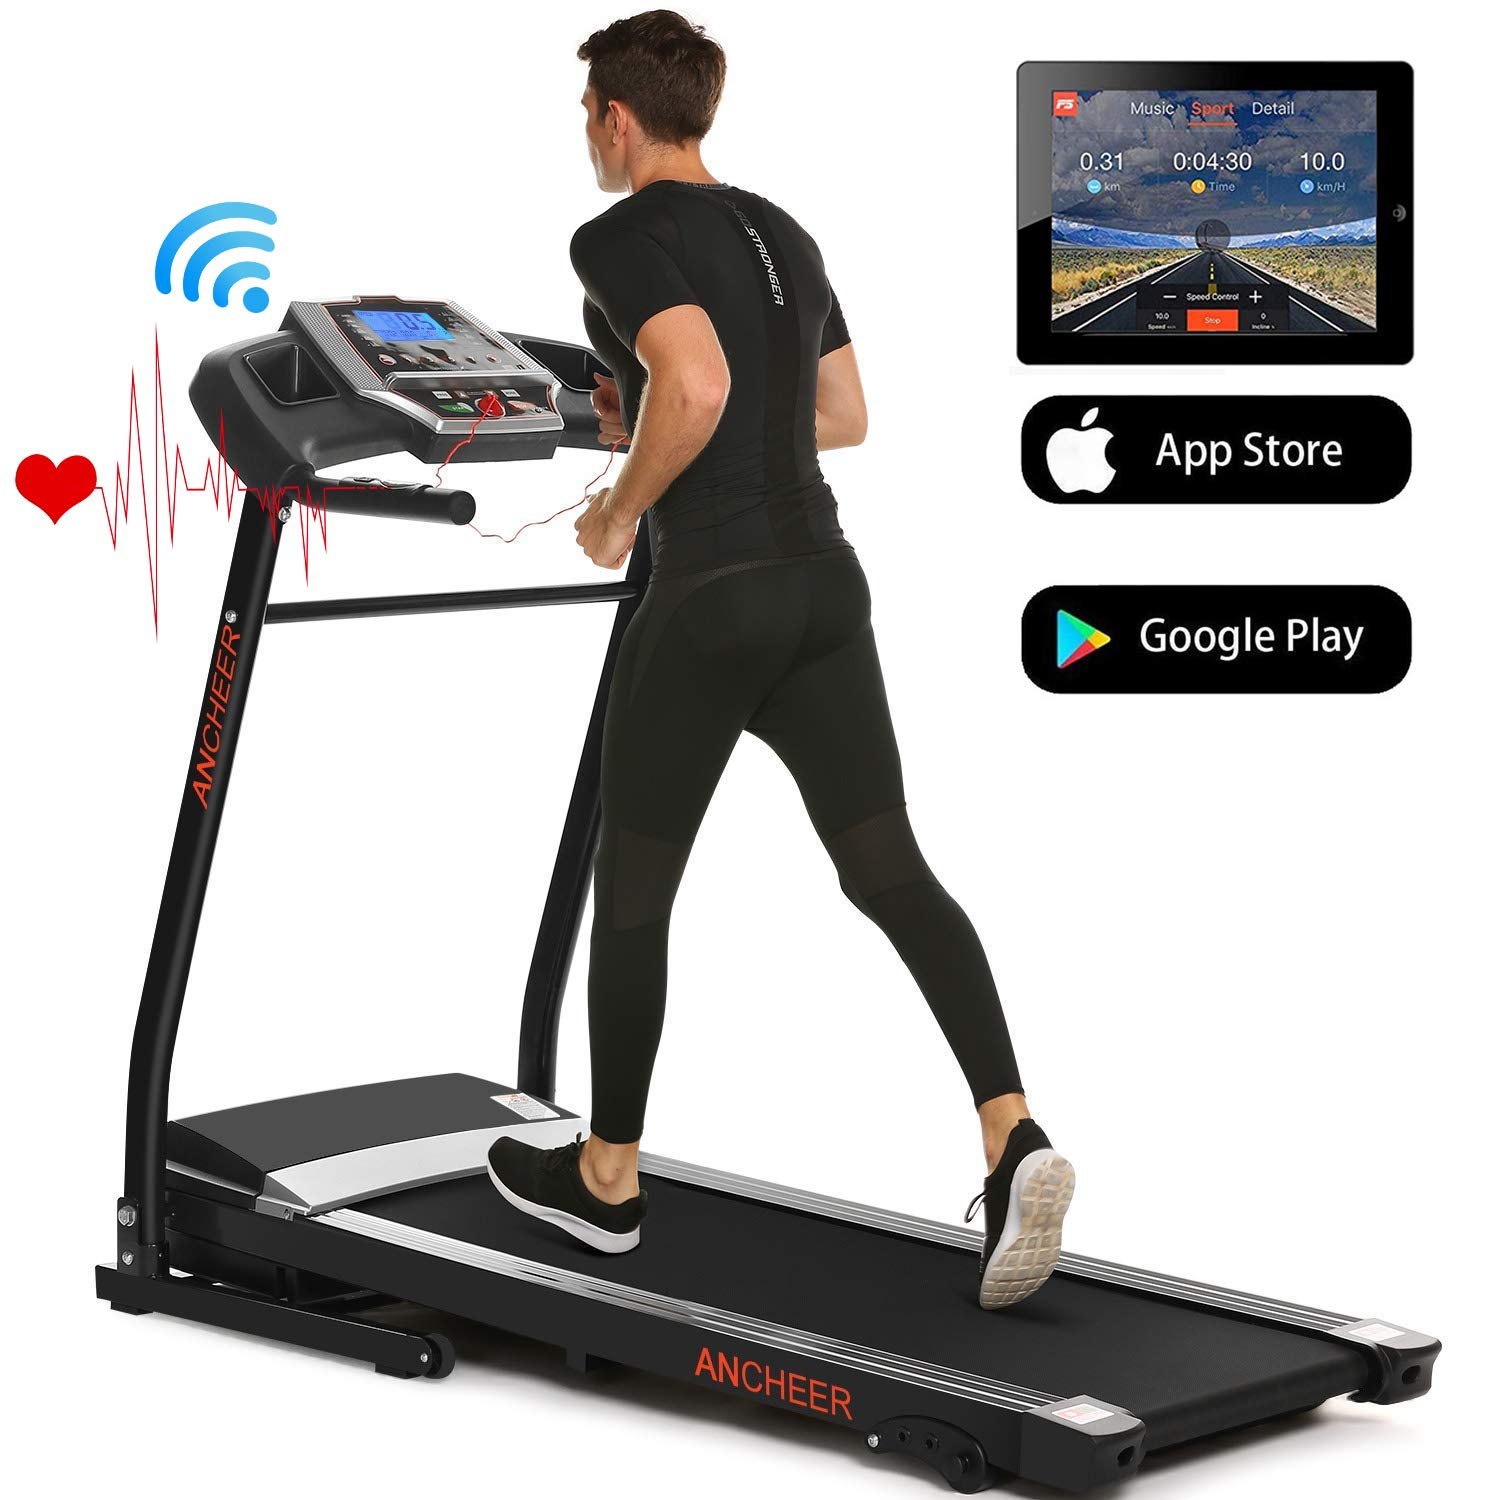 ANCHEER Treadmills for Home Running Machine with Incline – Folding Treadmill Electric Motorized Power with 12 Preset Programs Smartphone APP Control, Cardio Workout Gym Exercise Equipment